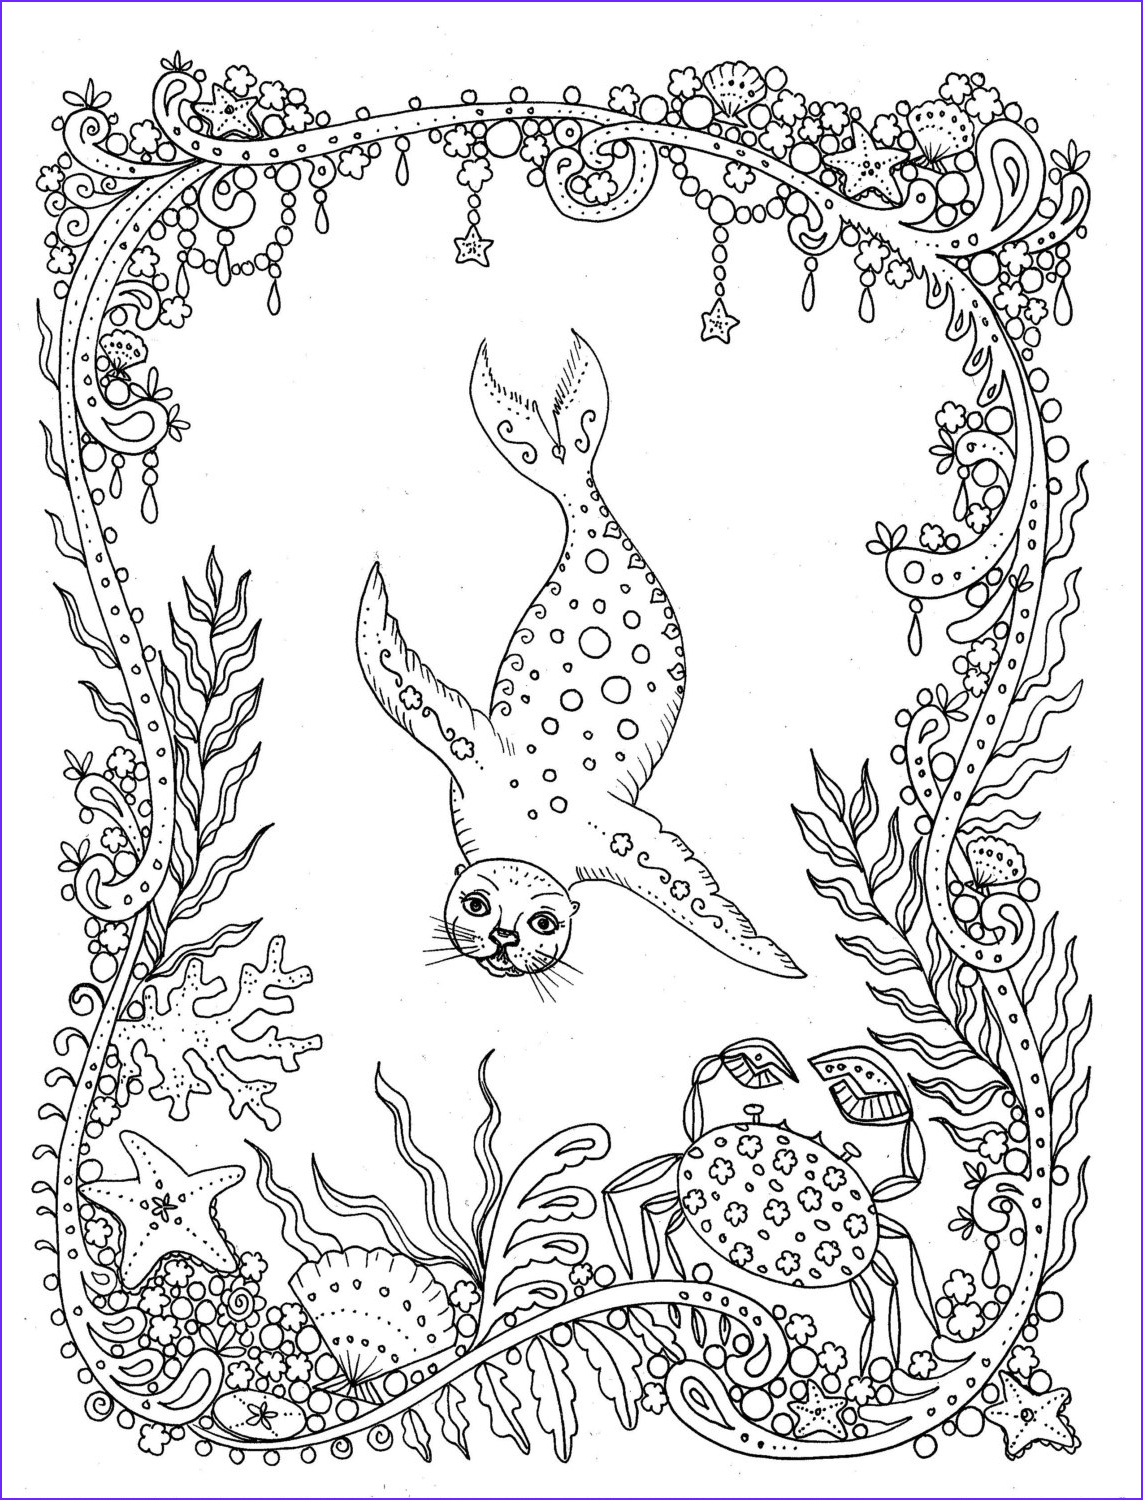 Fantasy Coloring Book Inspirational Collection Download Coloring Page Fantasy Seal You Be the Artist